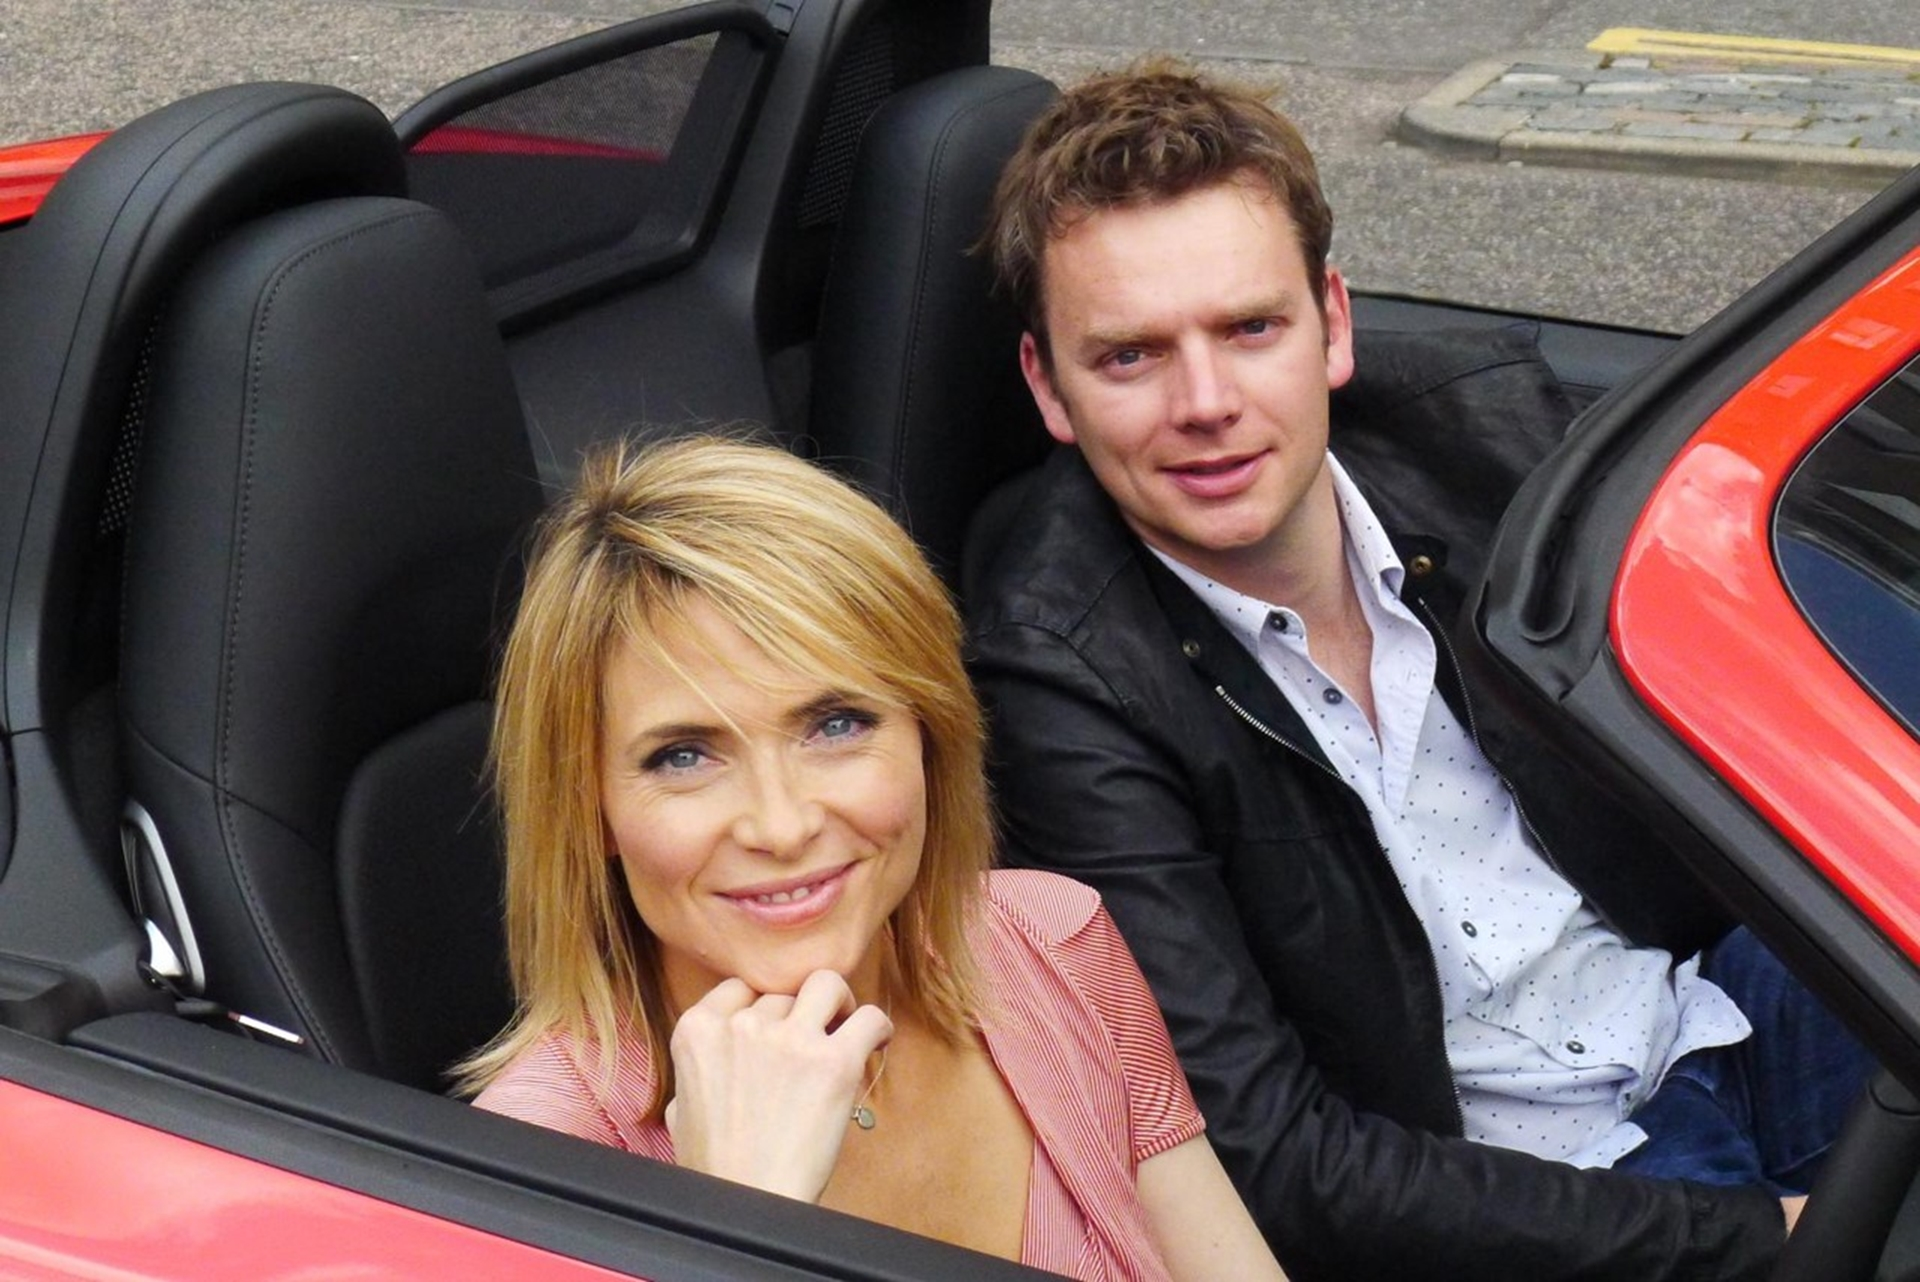 Lisa Rogers and Alistair Weaver